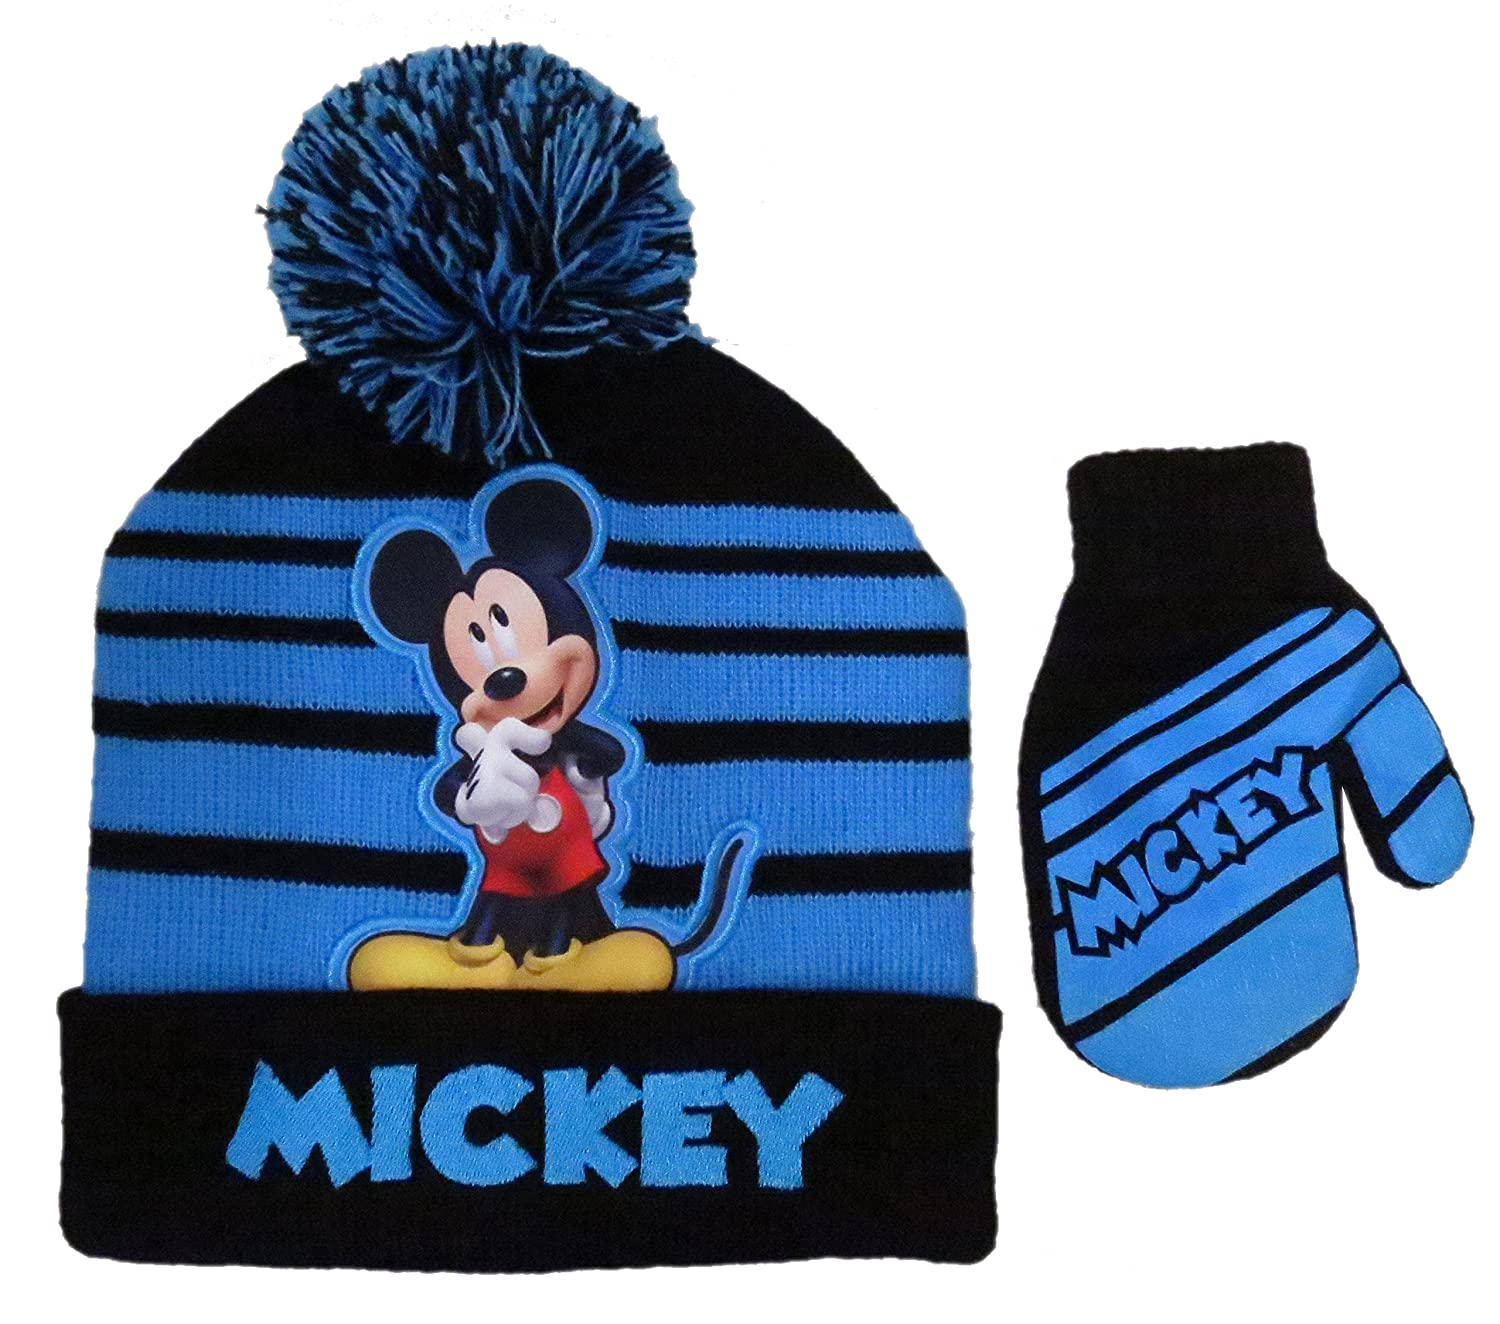 Disney Mickey Mouse Striped Winter Beanie Hat and Mitten Set - Size Boys 2-5 ABG Accessories